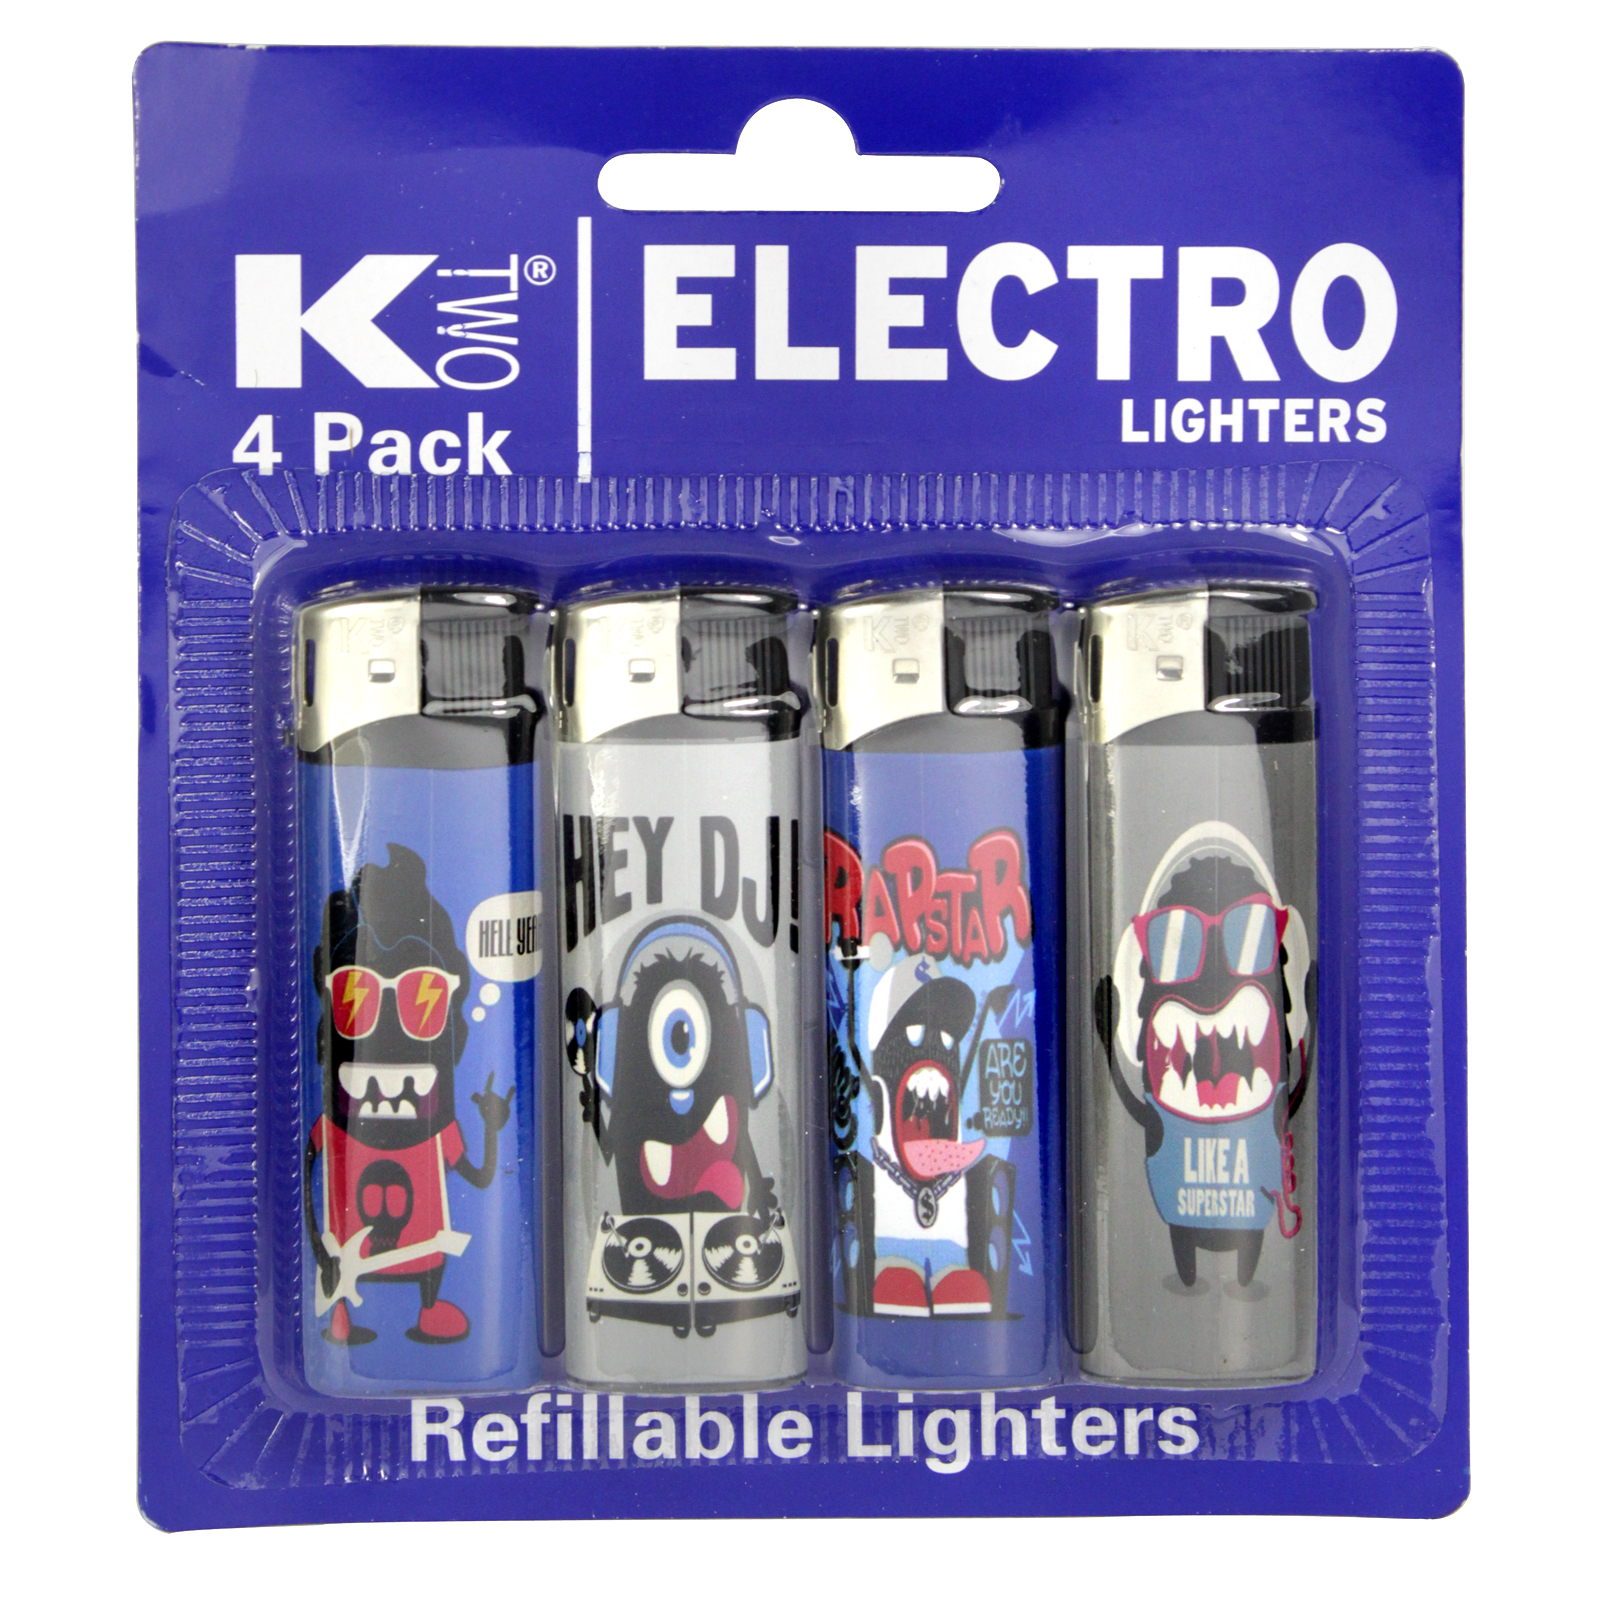 KTWO 4PK ELECTRONIC LIGHTERS MUSIC